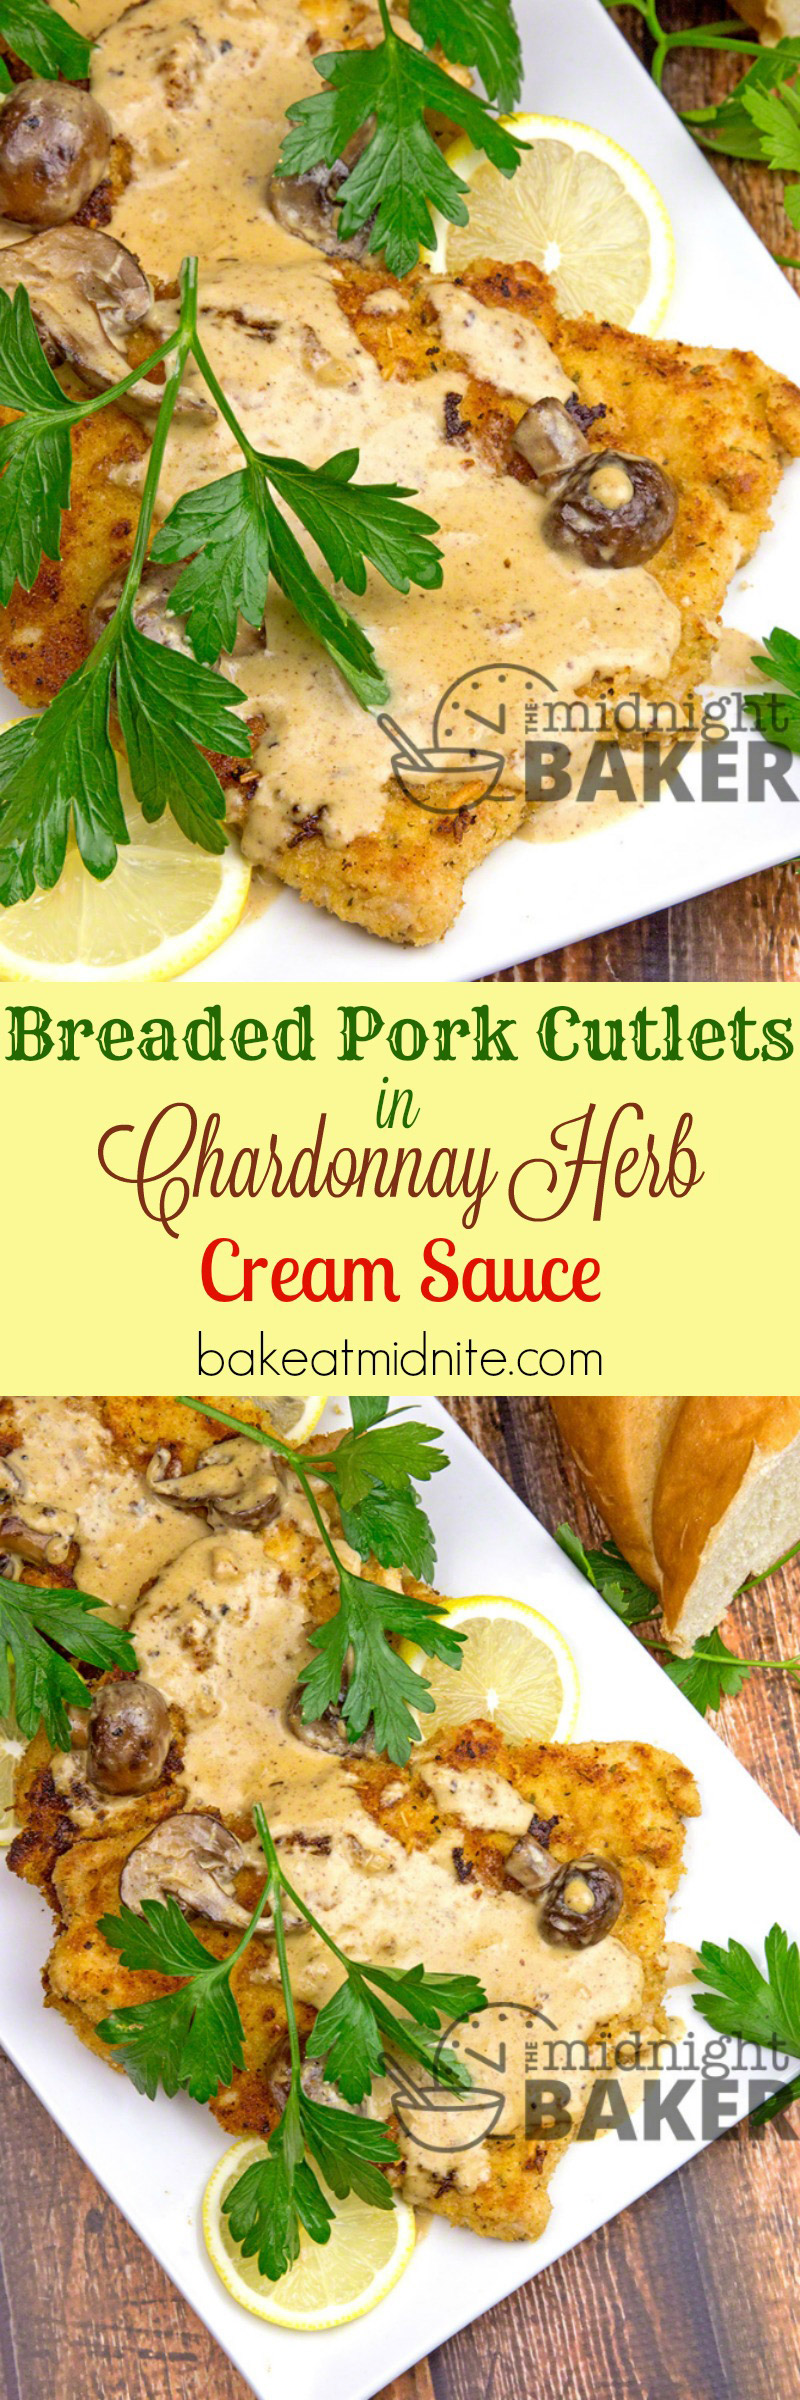 You'll never find boneless loin pork dry again after you taste these delicious cutlets in a rich chardonnay cream sauce. Guess what? It's easy too!